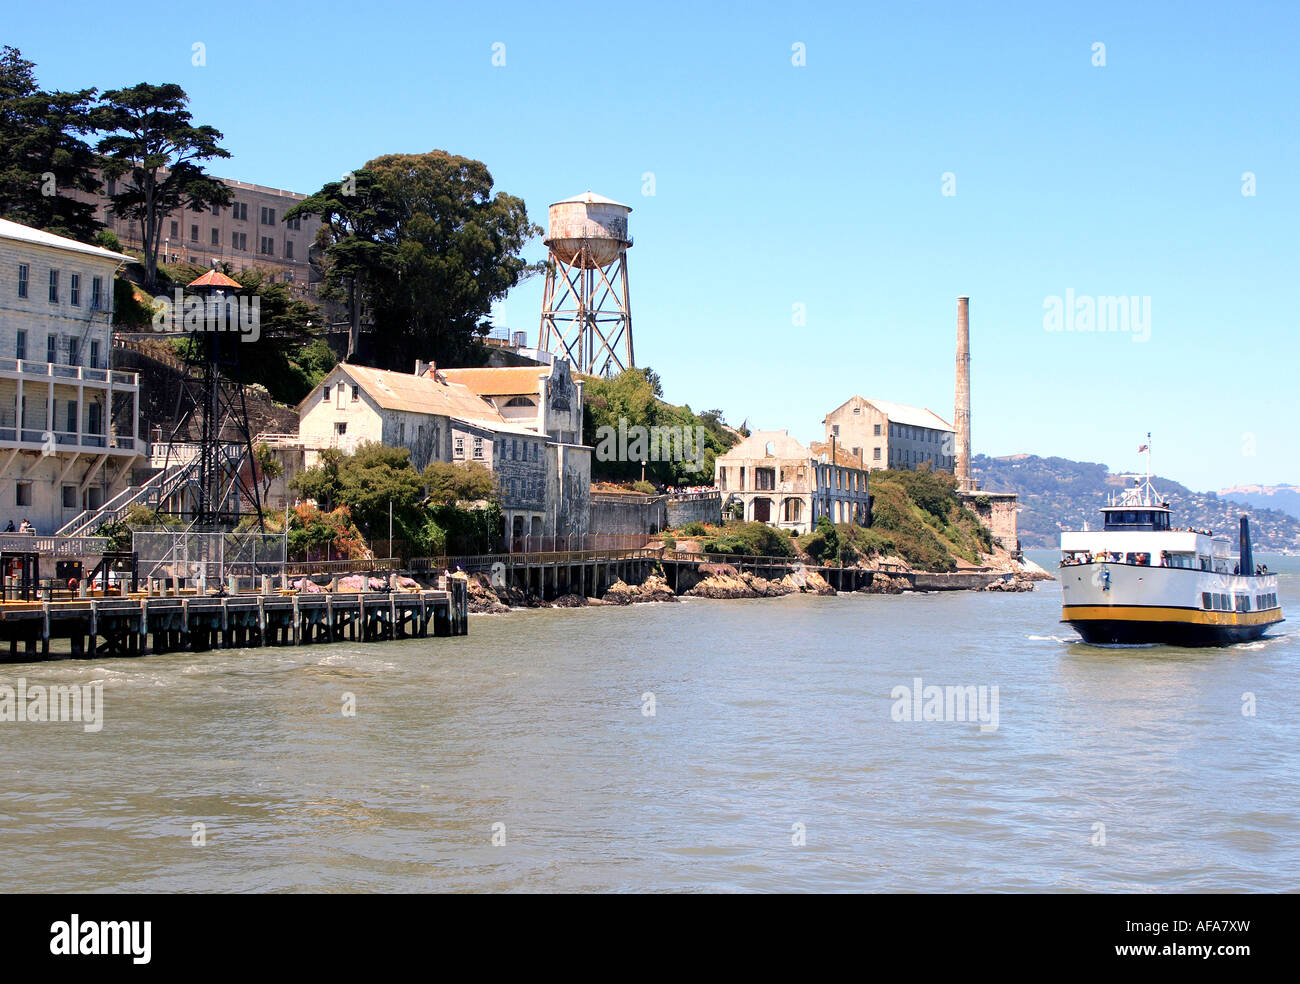 A San Francisco Bay tour boat sailing by the old prison buildings on Alcatraz Island - Stock Image